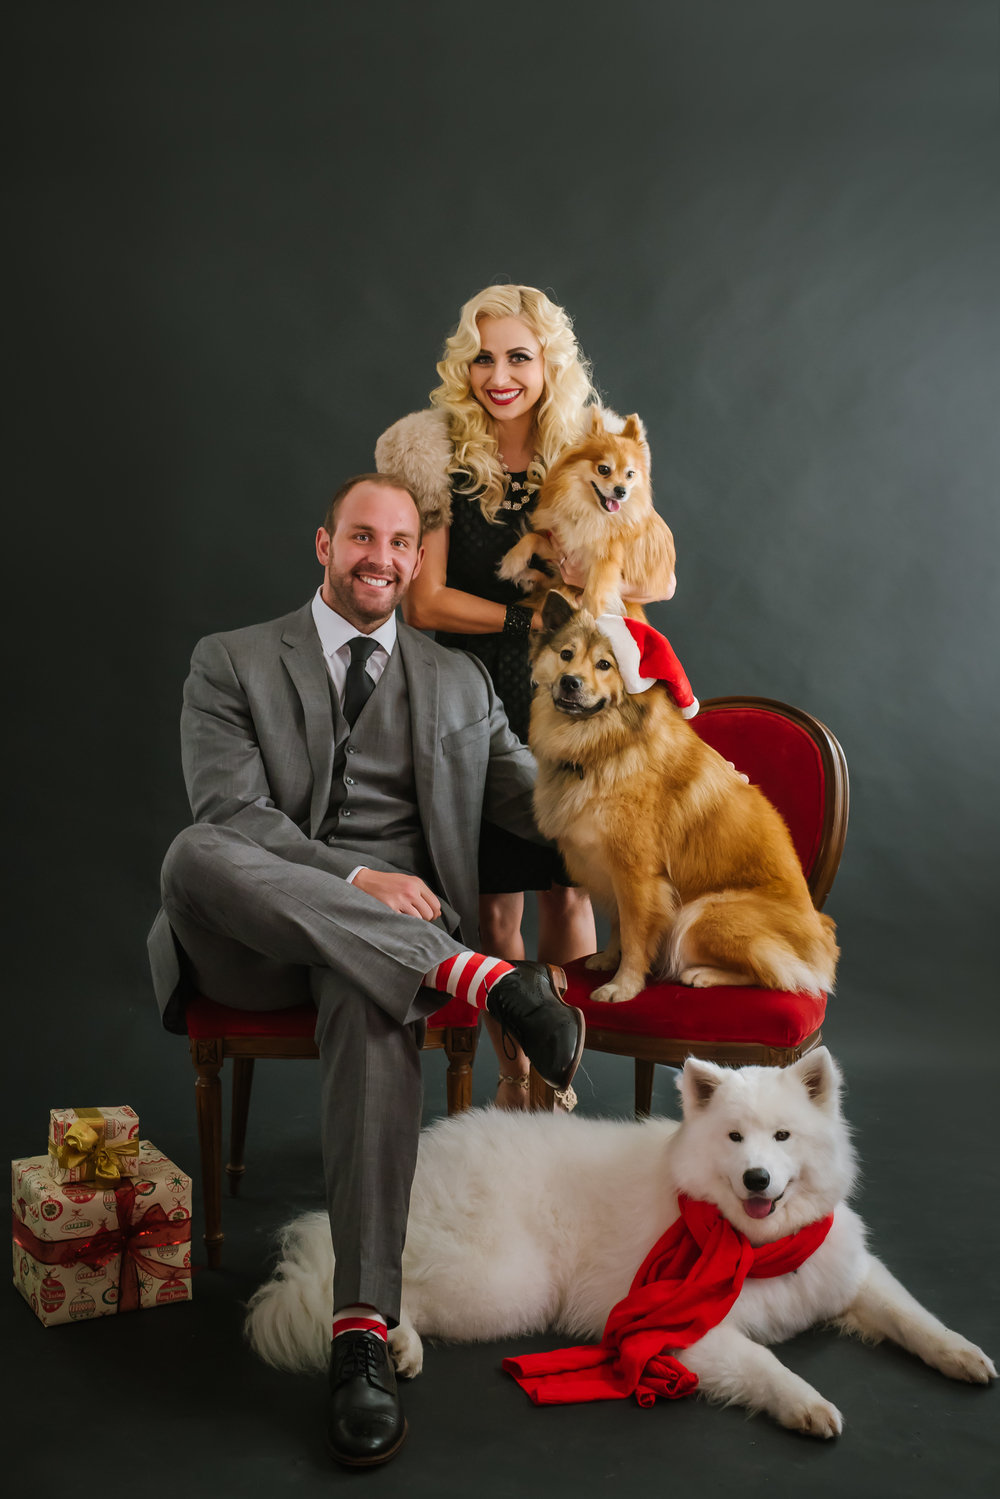 Then it was more pups at the studio for our holiday mini sessions!